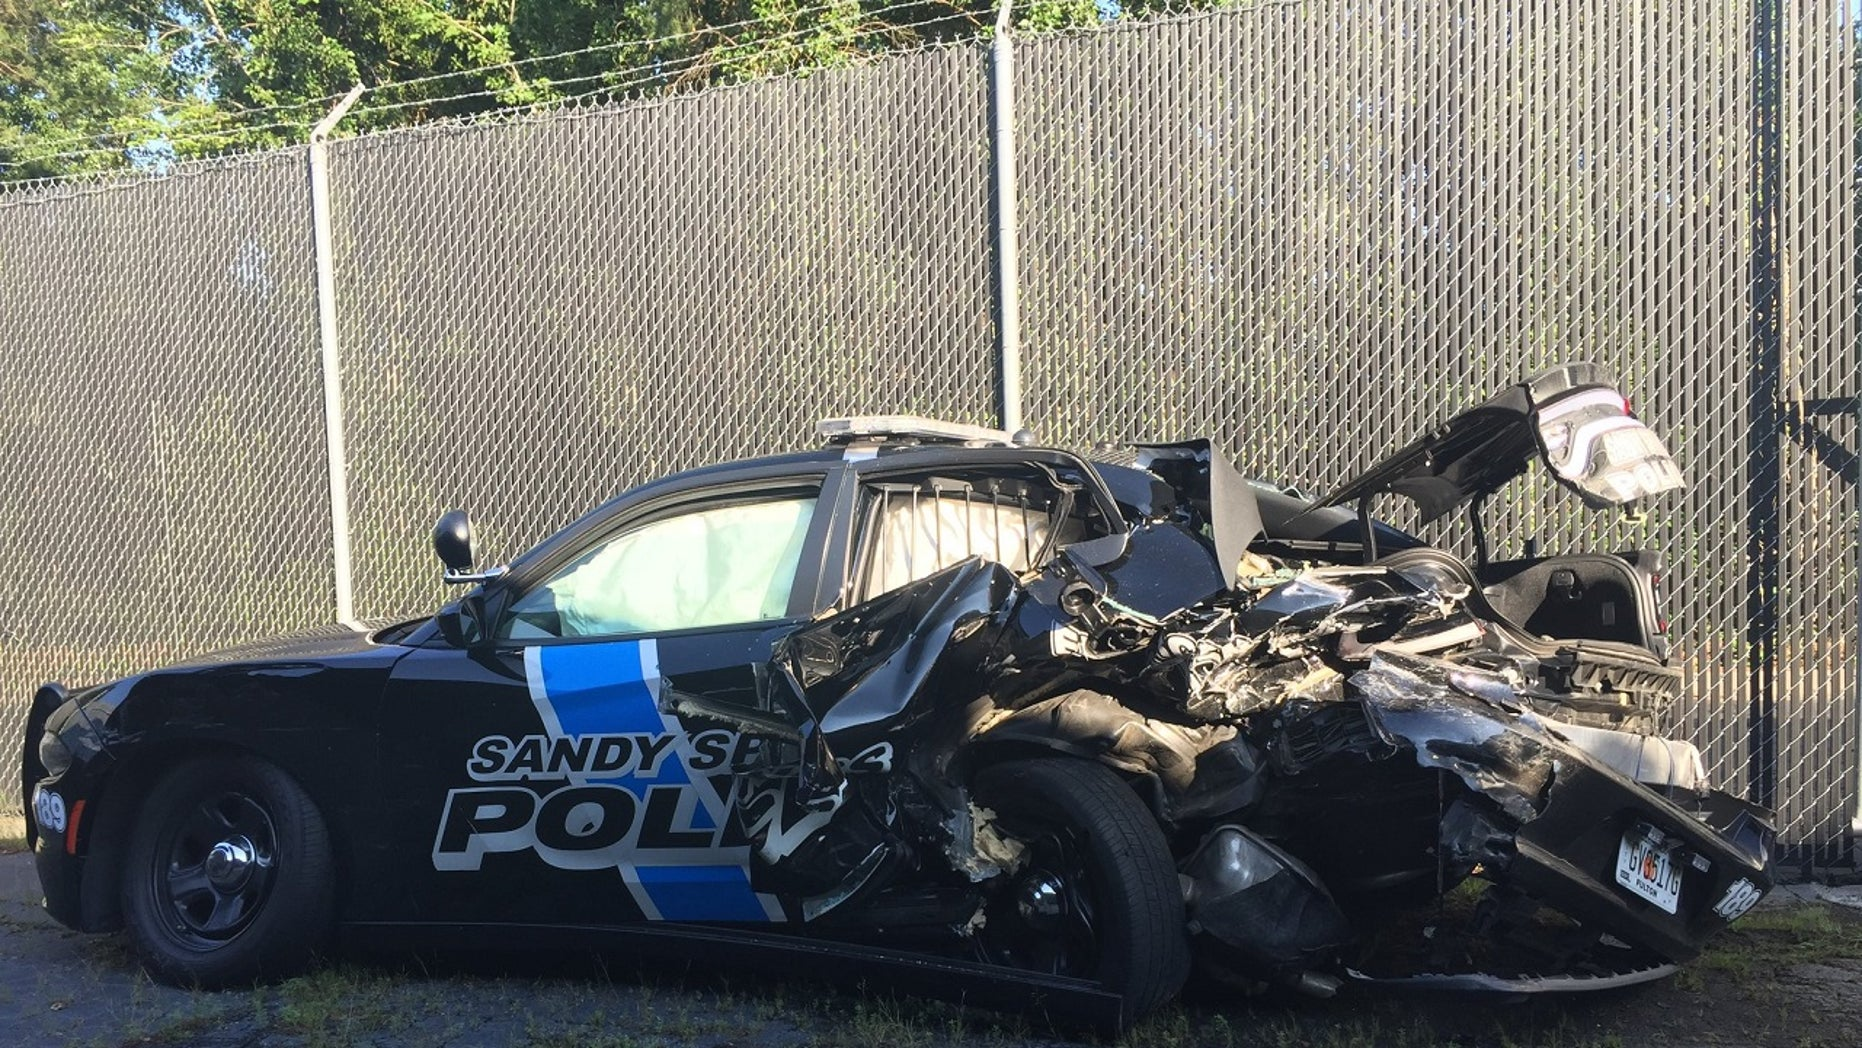 Police in Georgia shared this image on Facebook of a cruiser they said was hit.